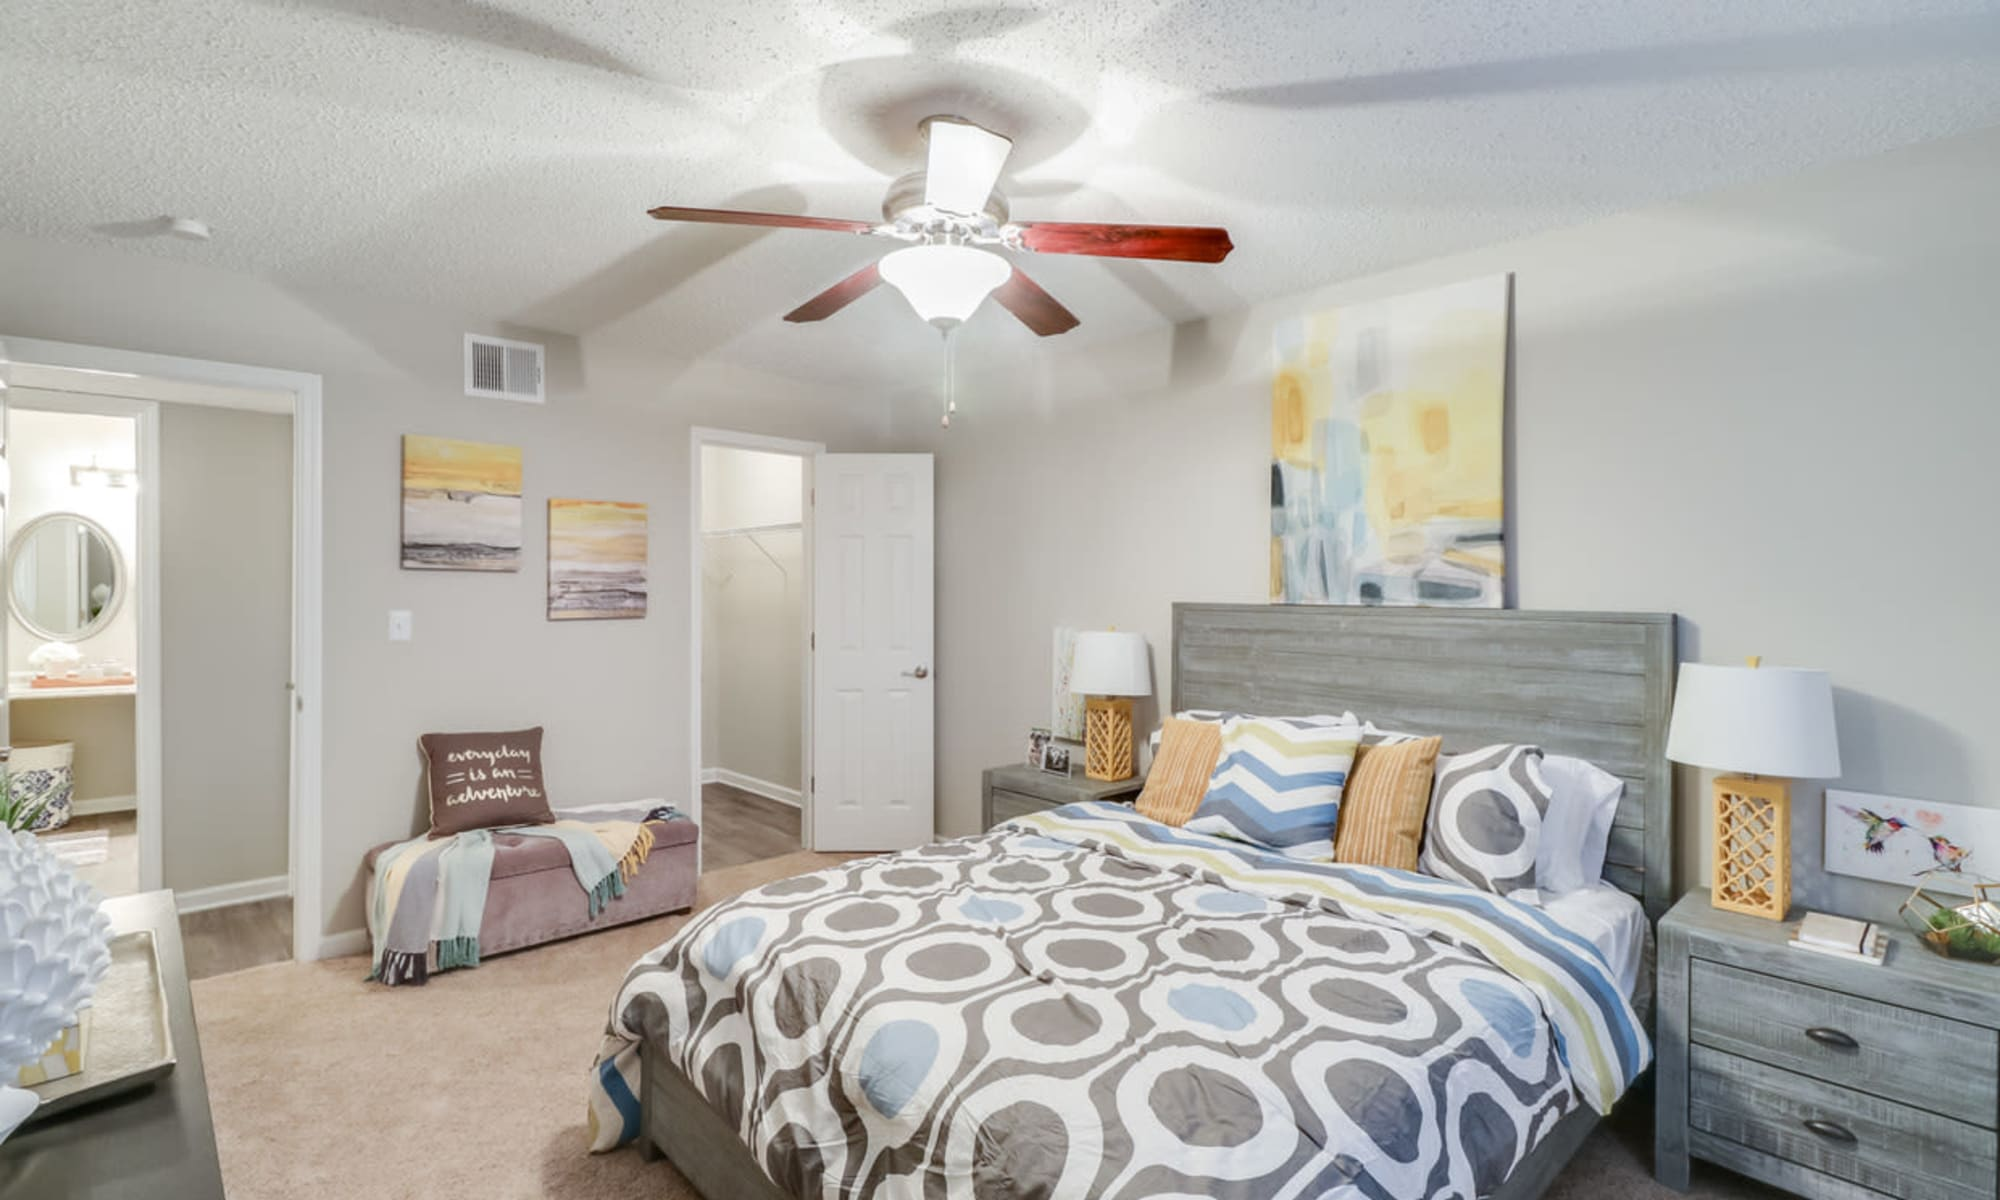 Model bedroom at Pinebrook Apartments in Ridgeland, Mississippi